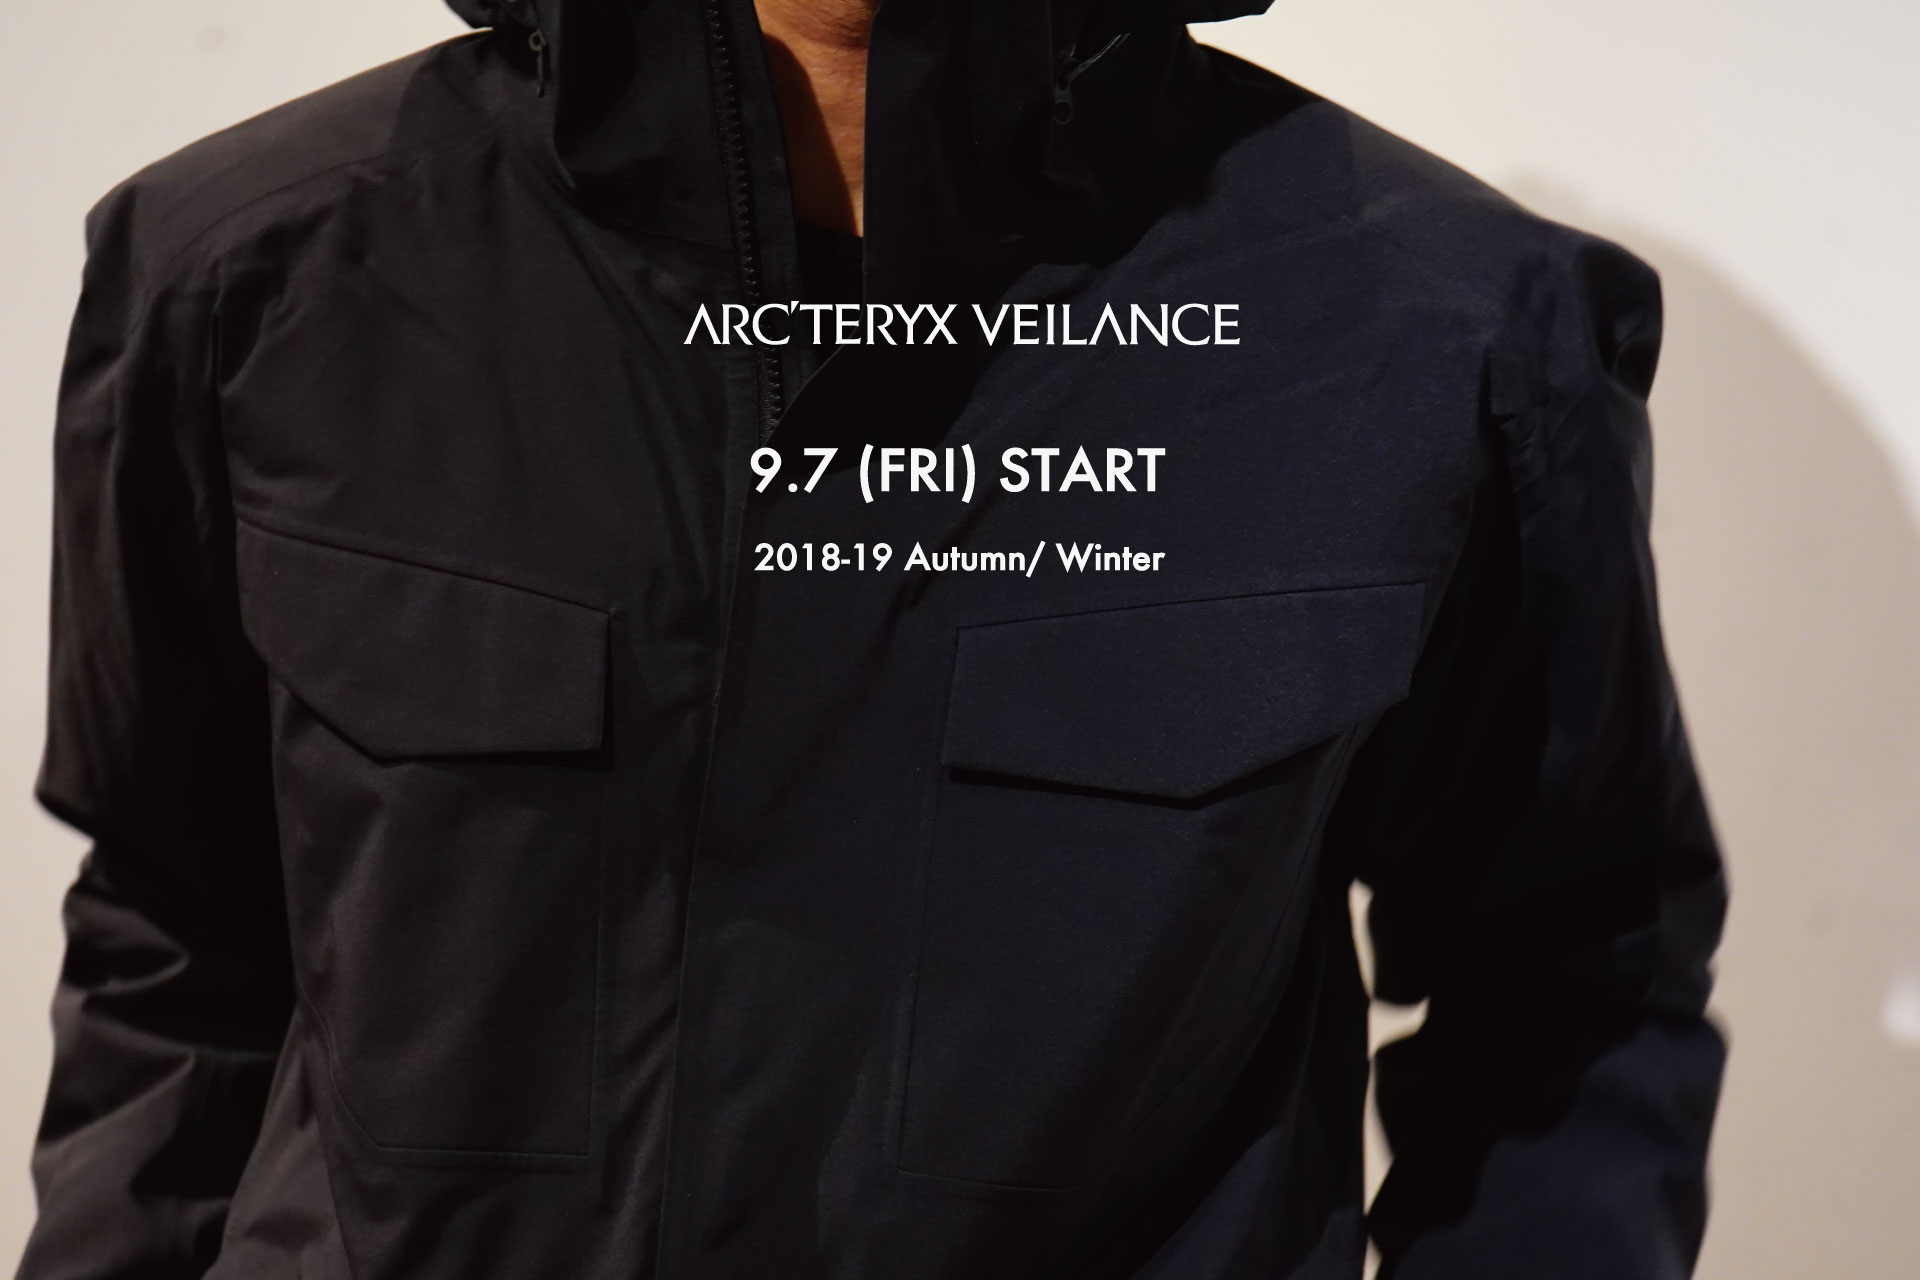 ARC'TERYX VEILANCE Autumn&Winter 2018 START